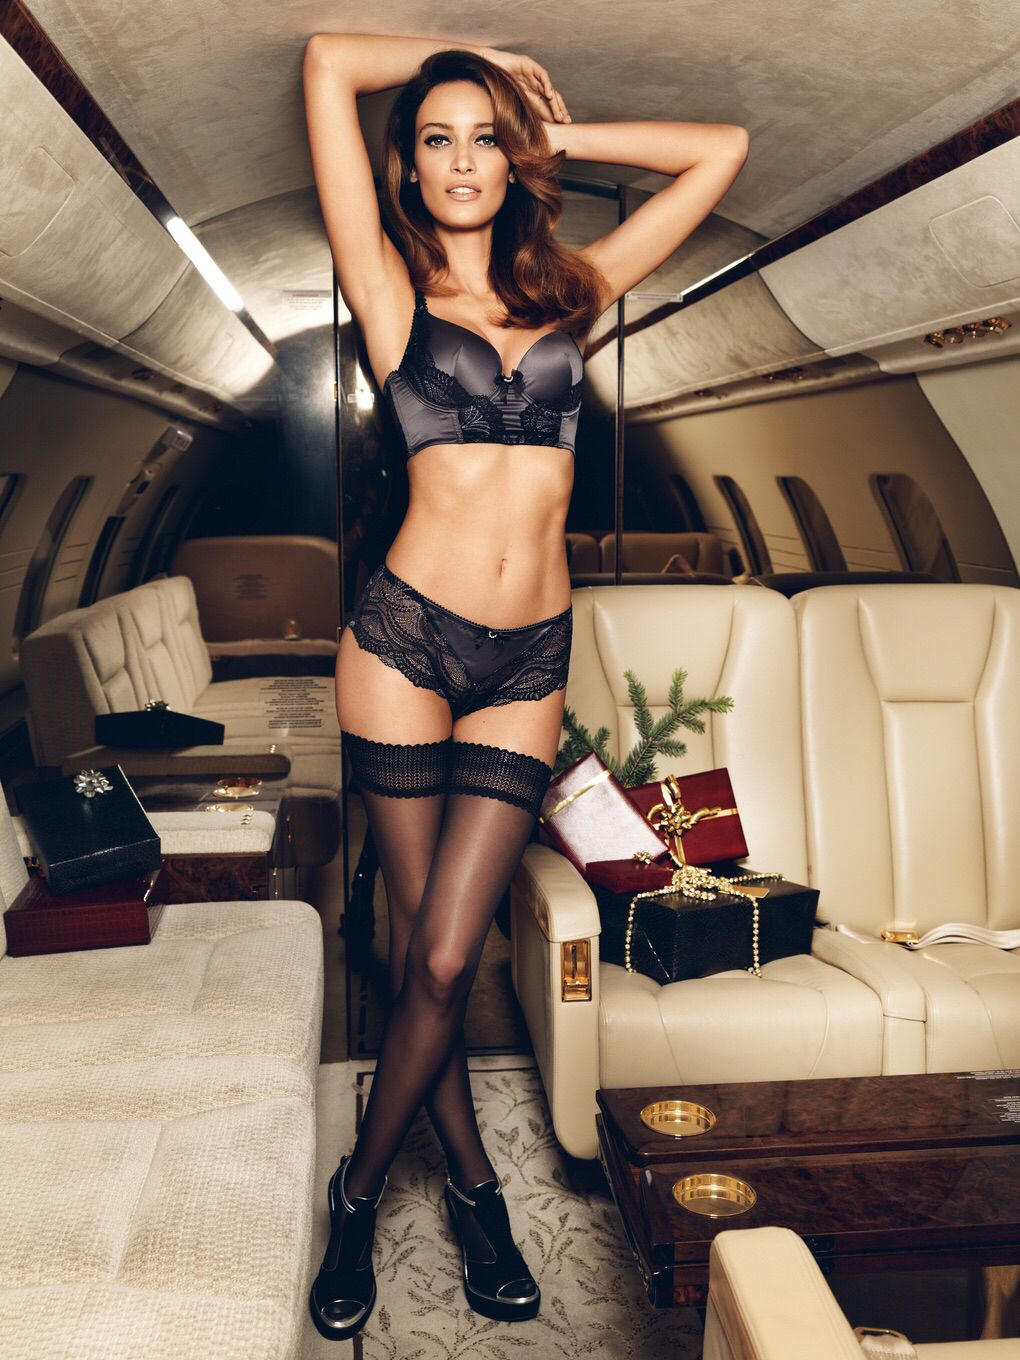 Naked woman private jet pic 594